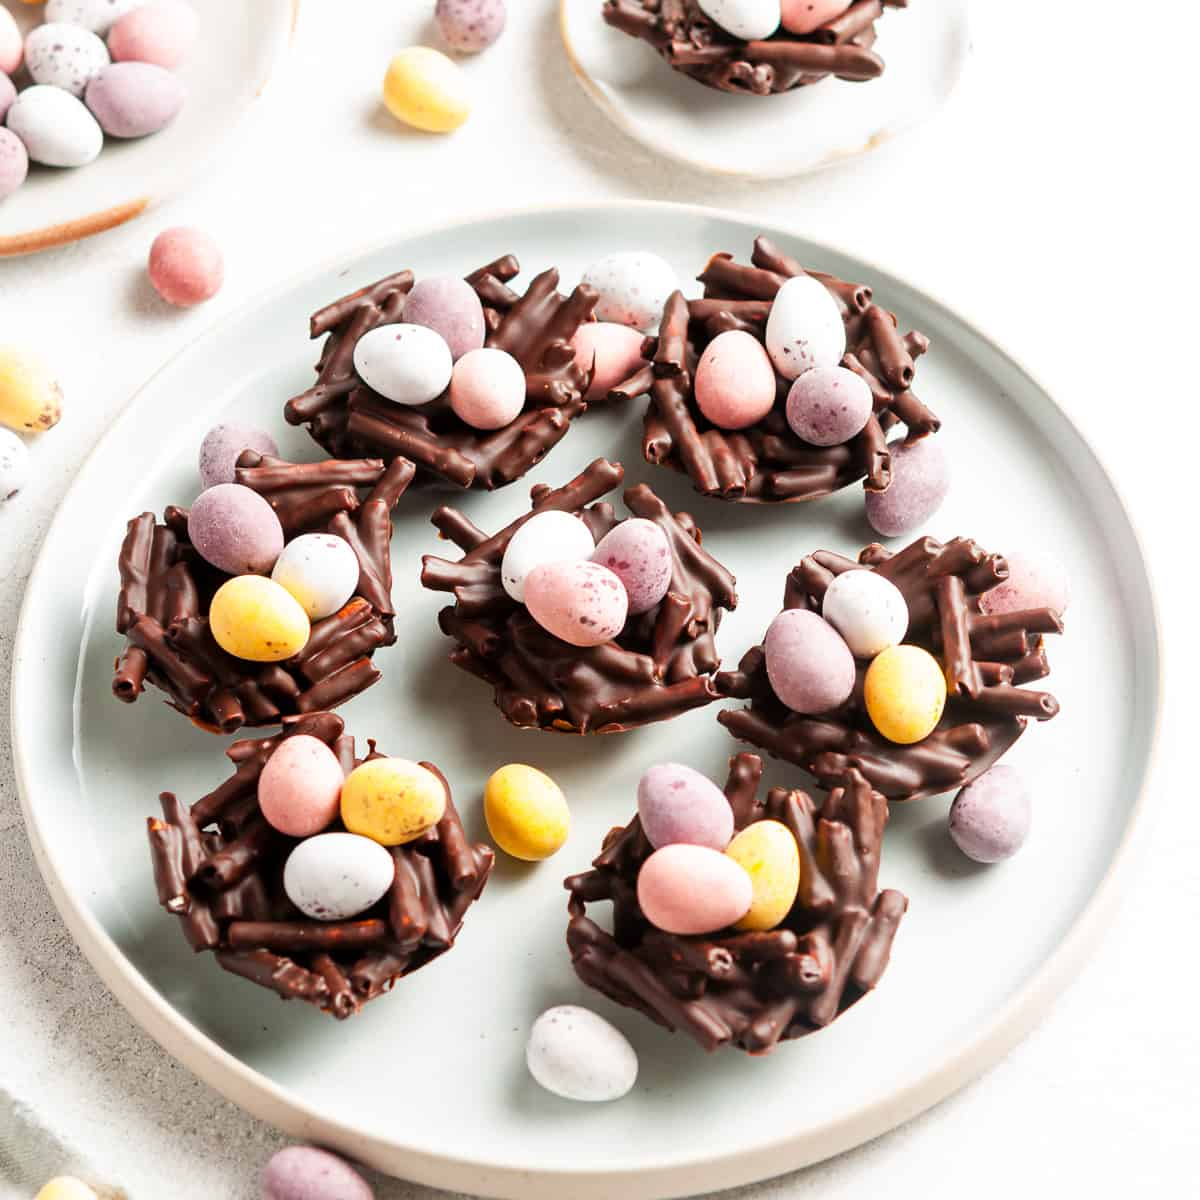 round plate of nests filled with mini eggs.